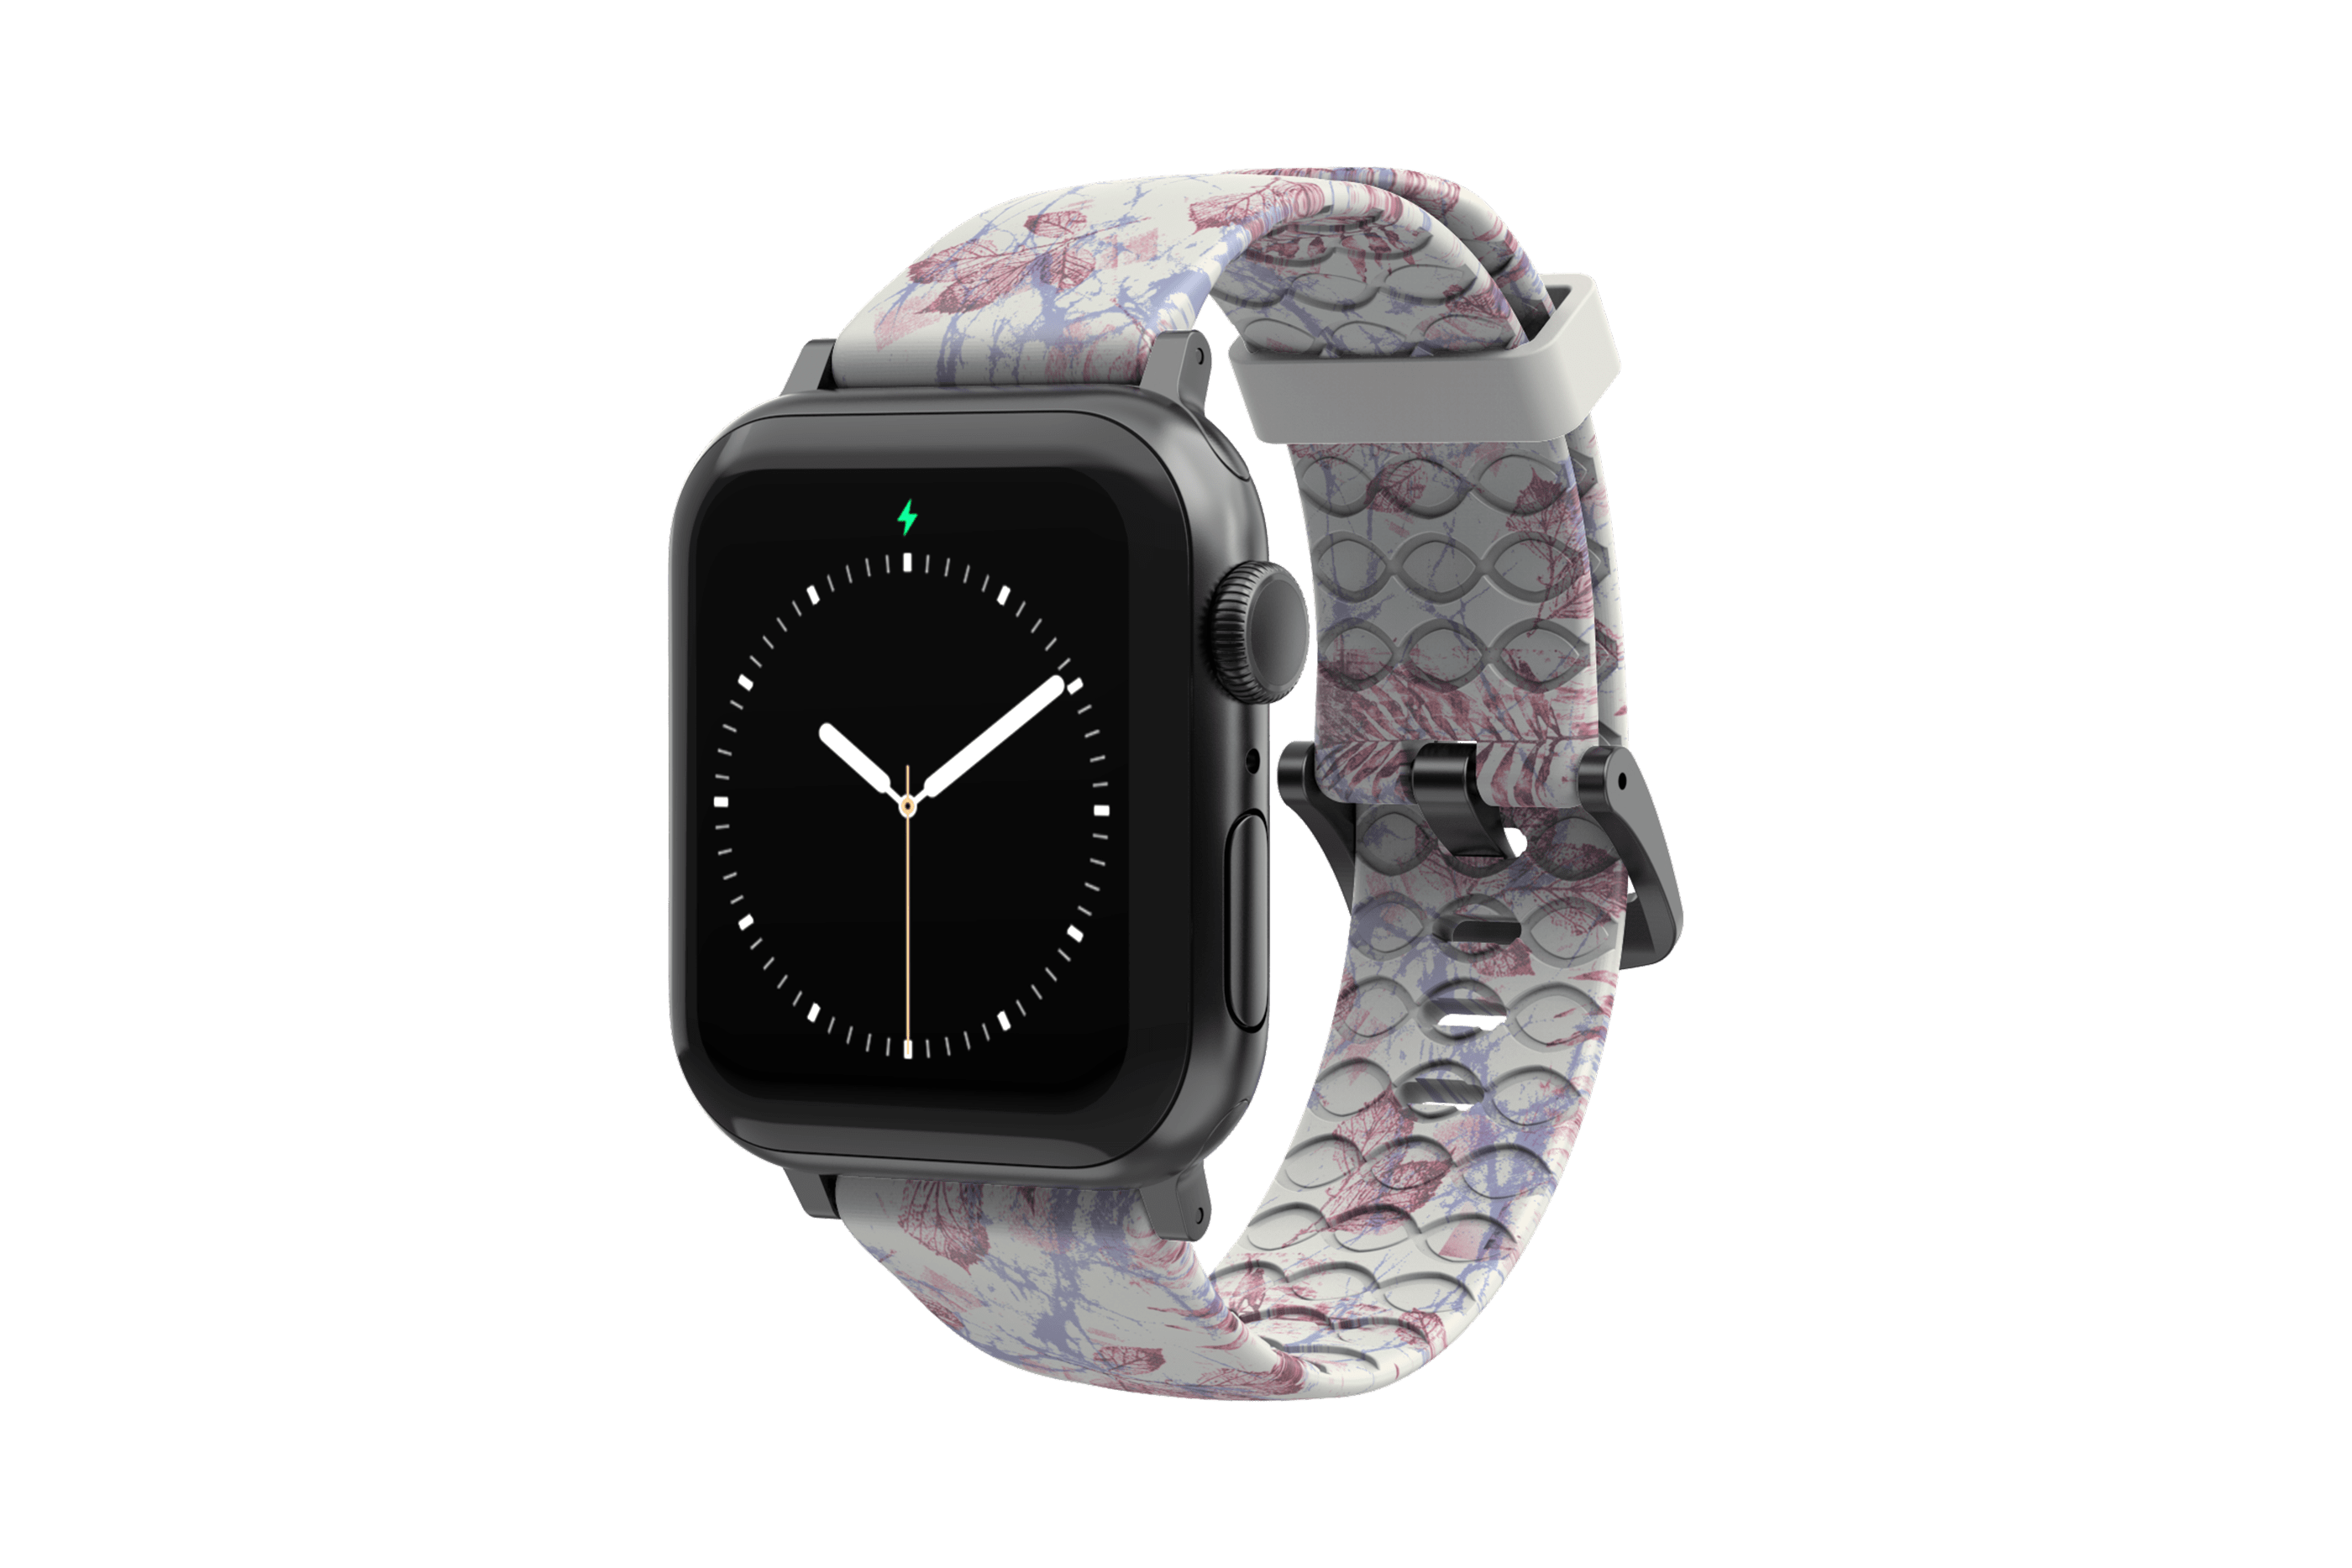 Breeze - Apple Watch Band with gray hardware viewed front on